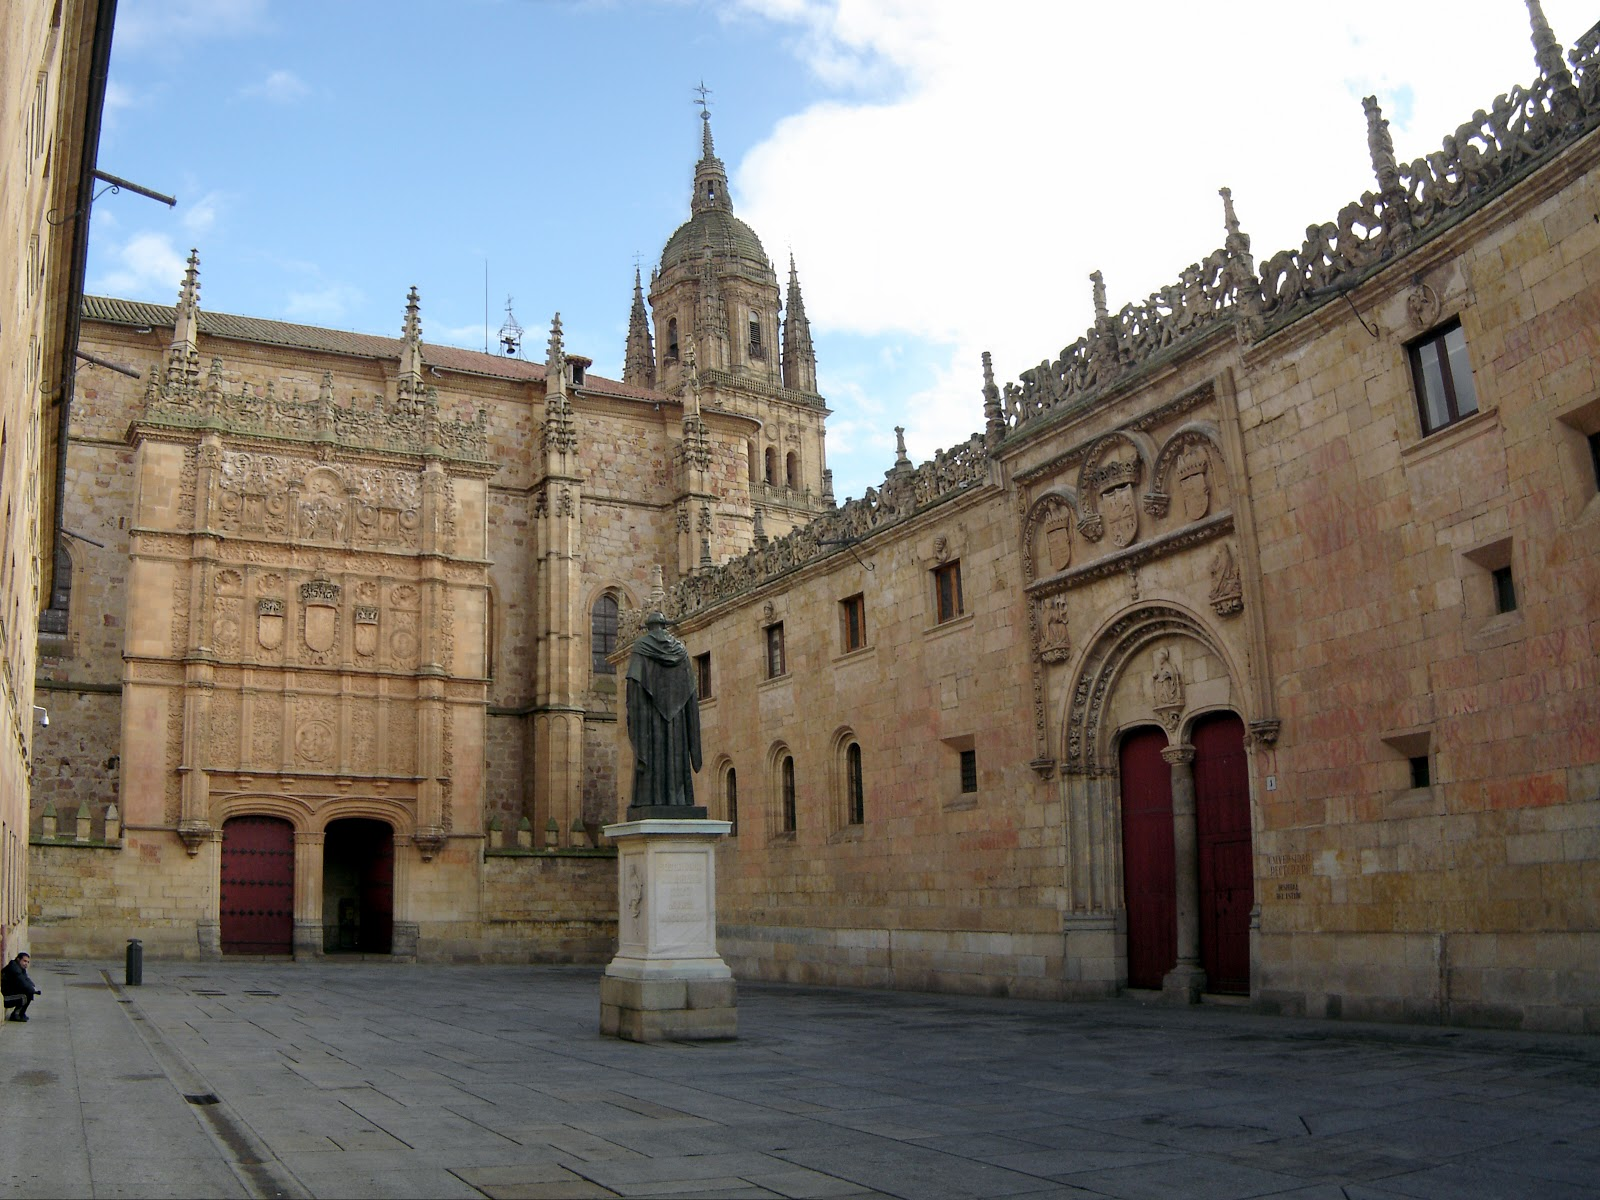 Postcards from spain november 2011 - On salamanca ...